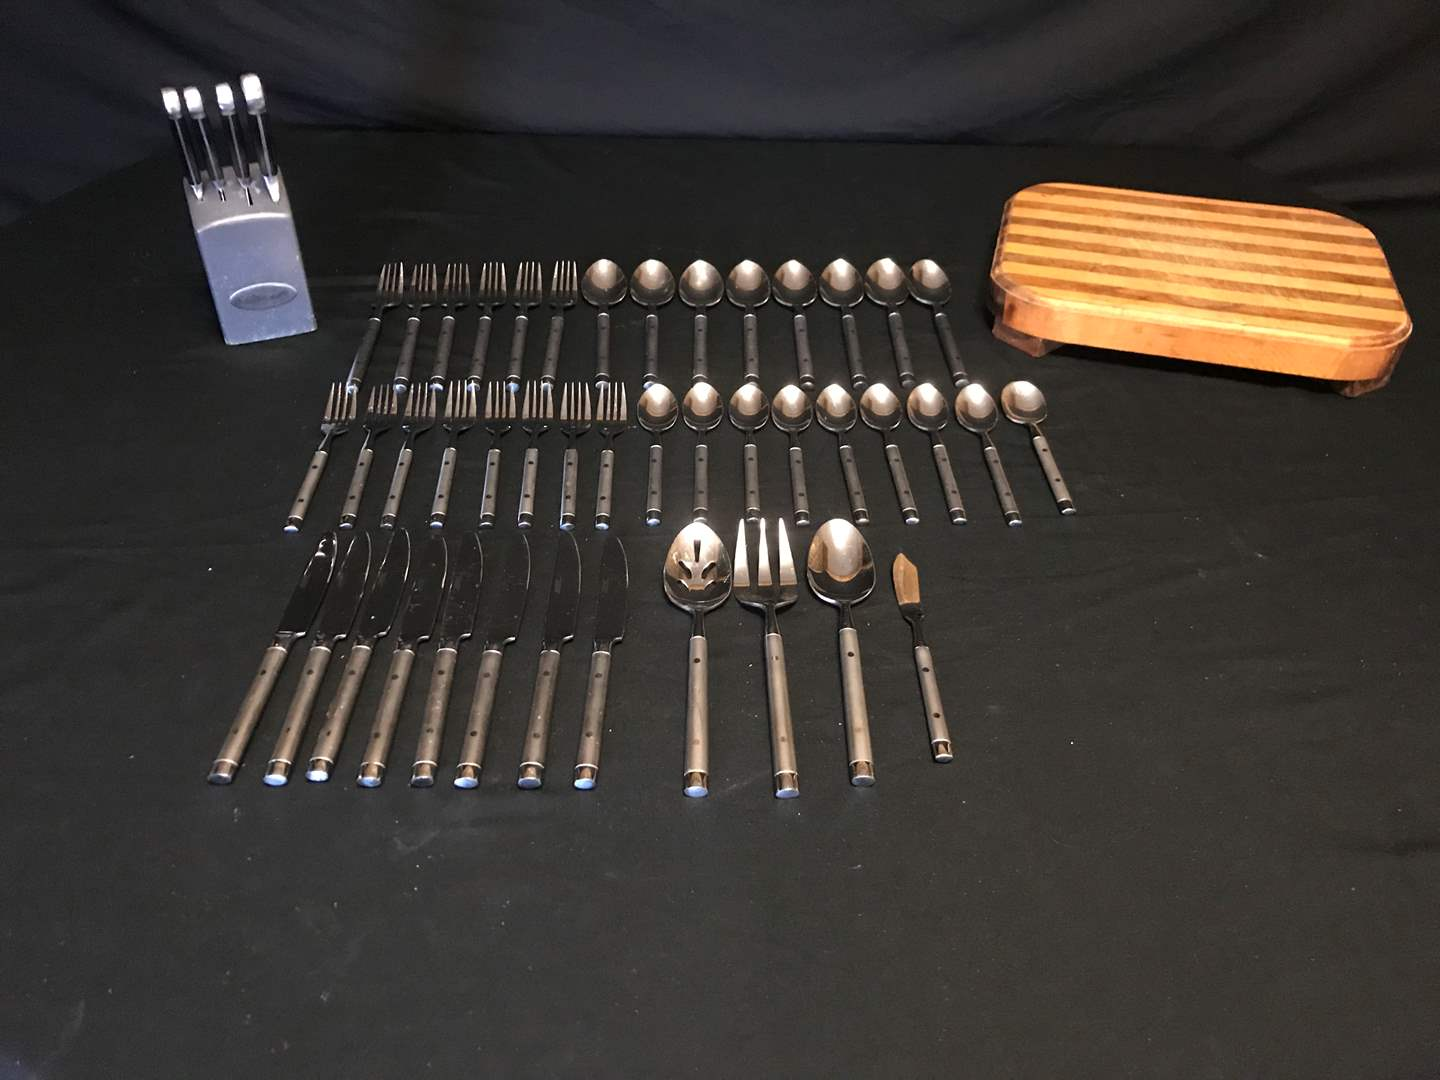 Lot # 60 - Selection of Cambridge Flatware, Cuisinart Knives & Cutting Board (main image)